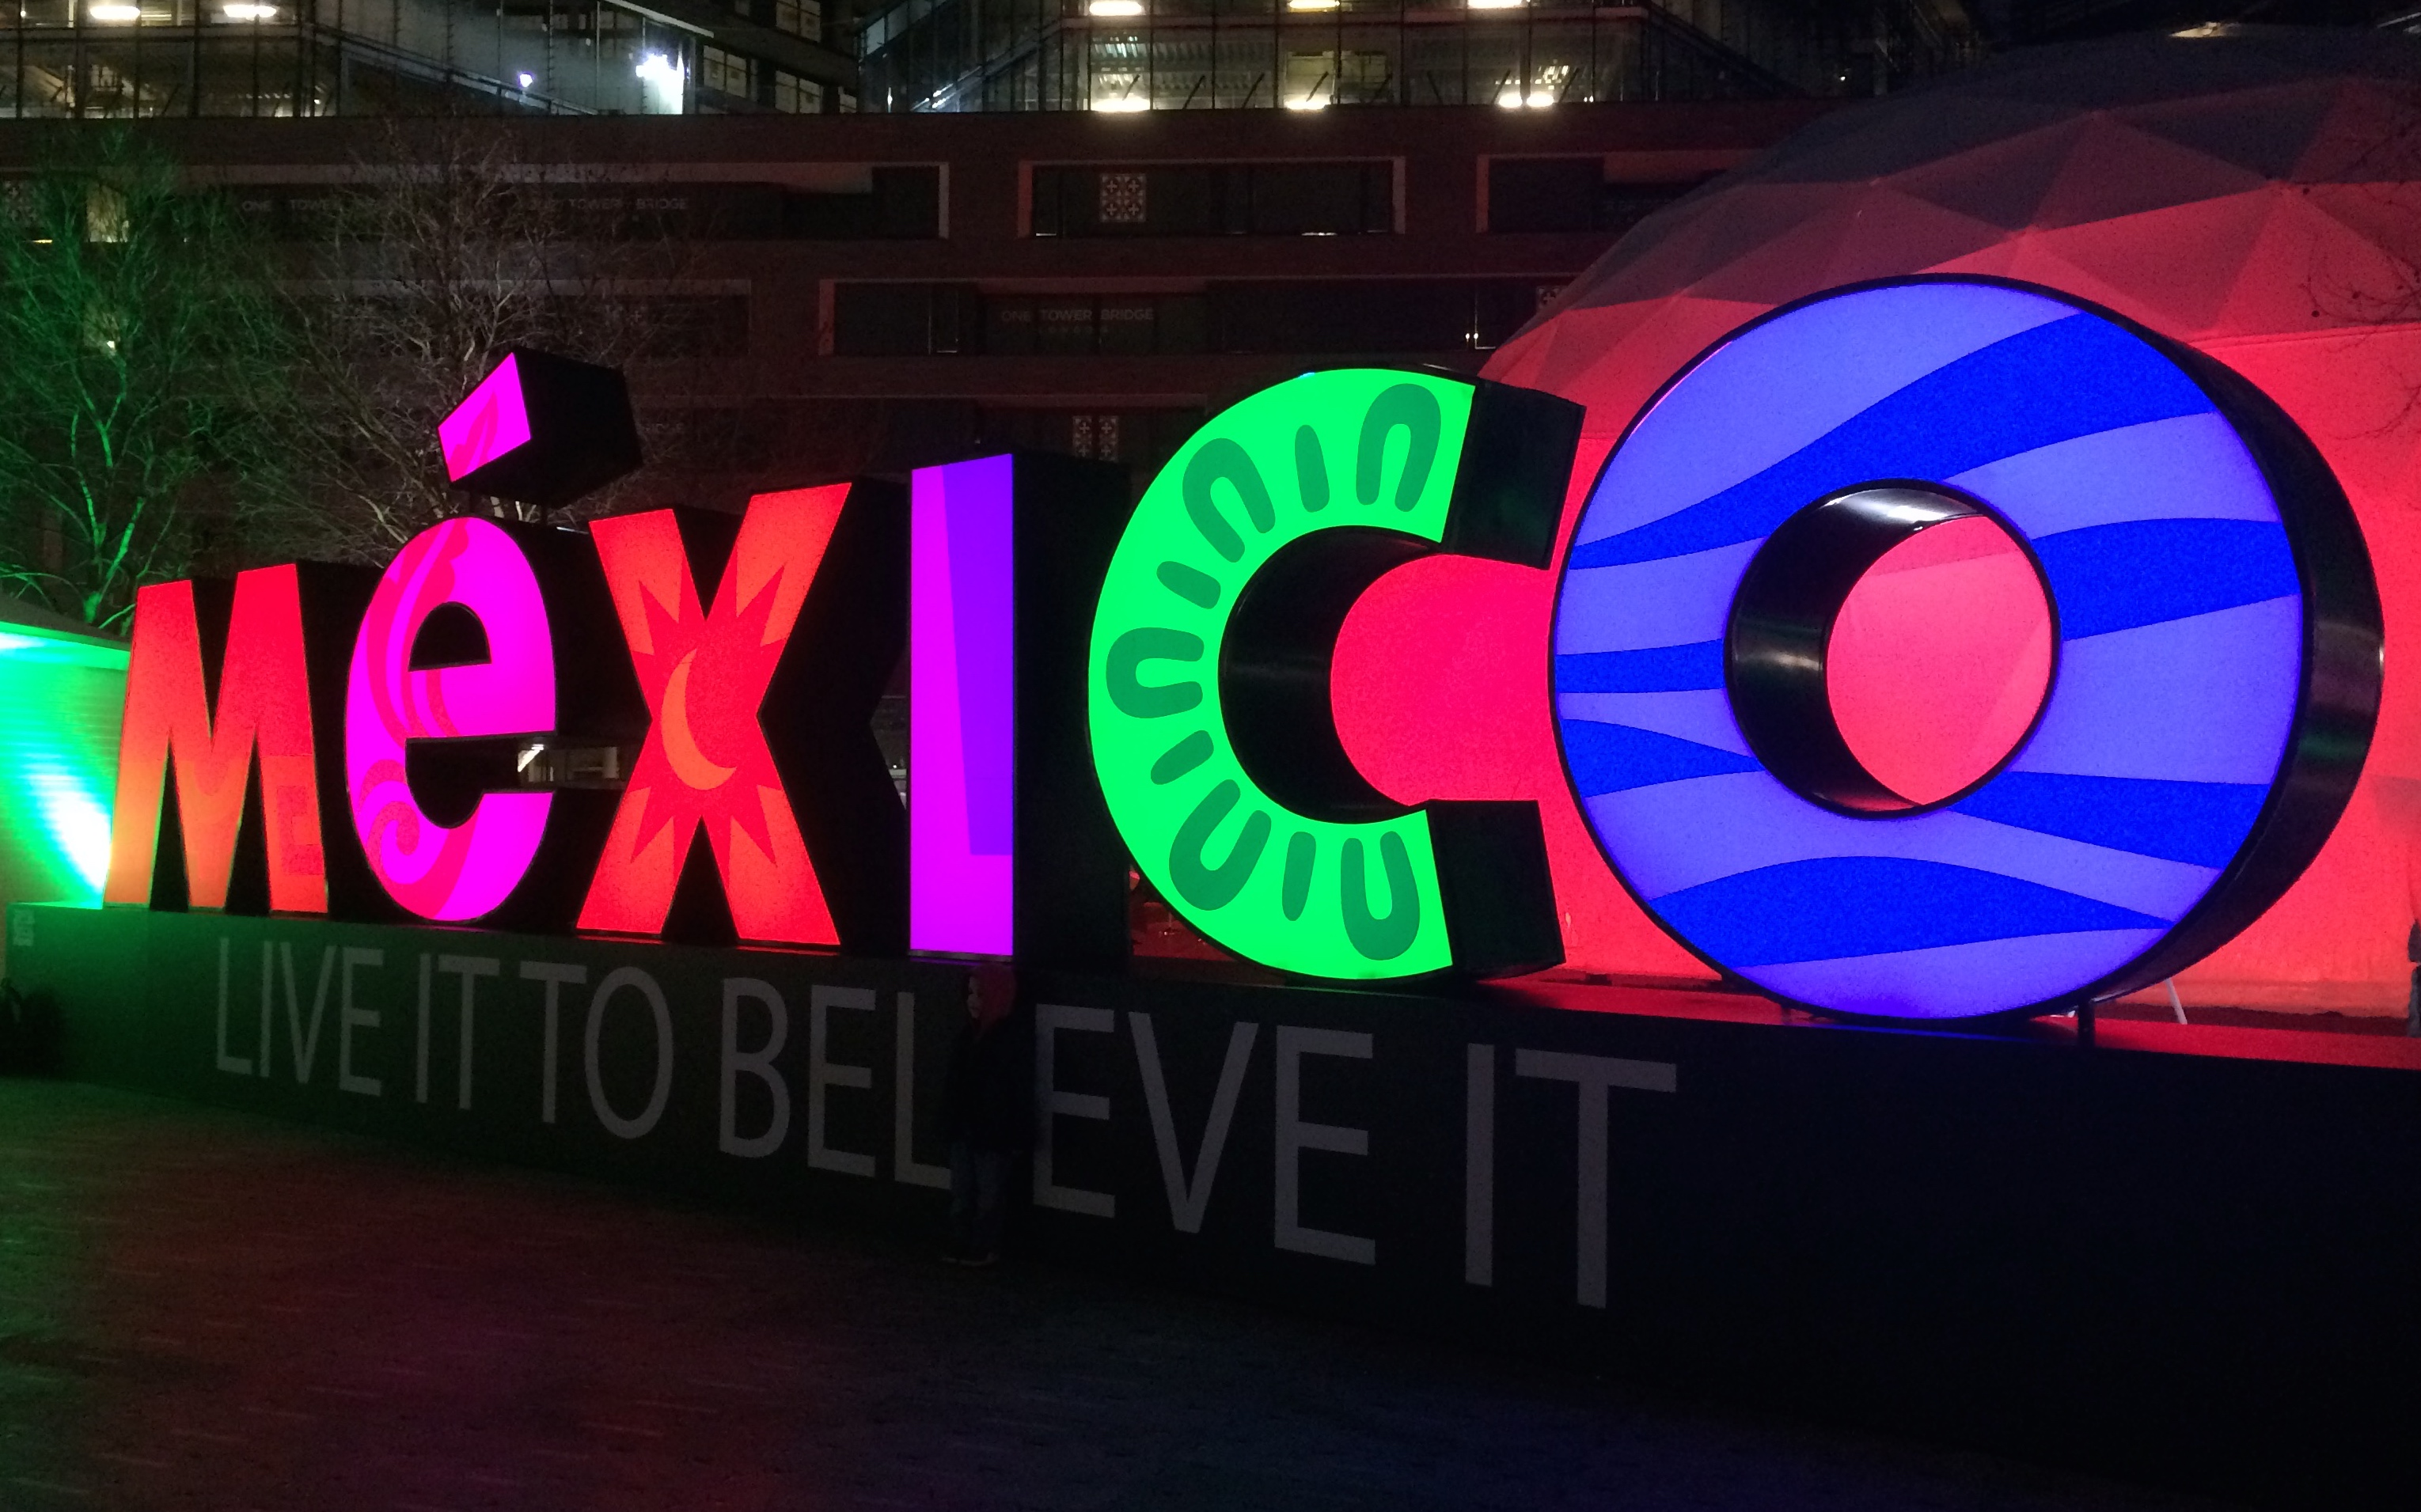 Mexico sign southbank